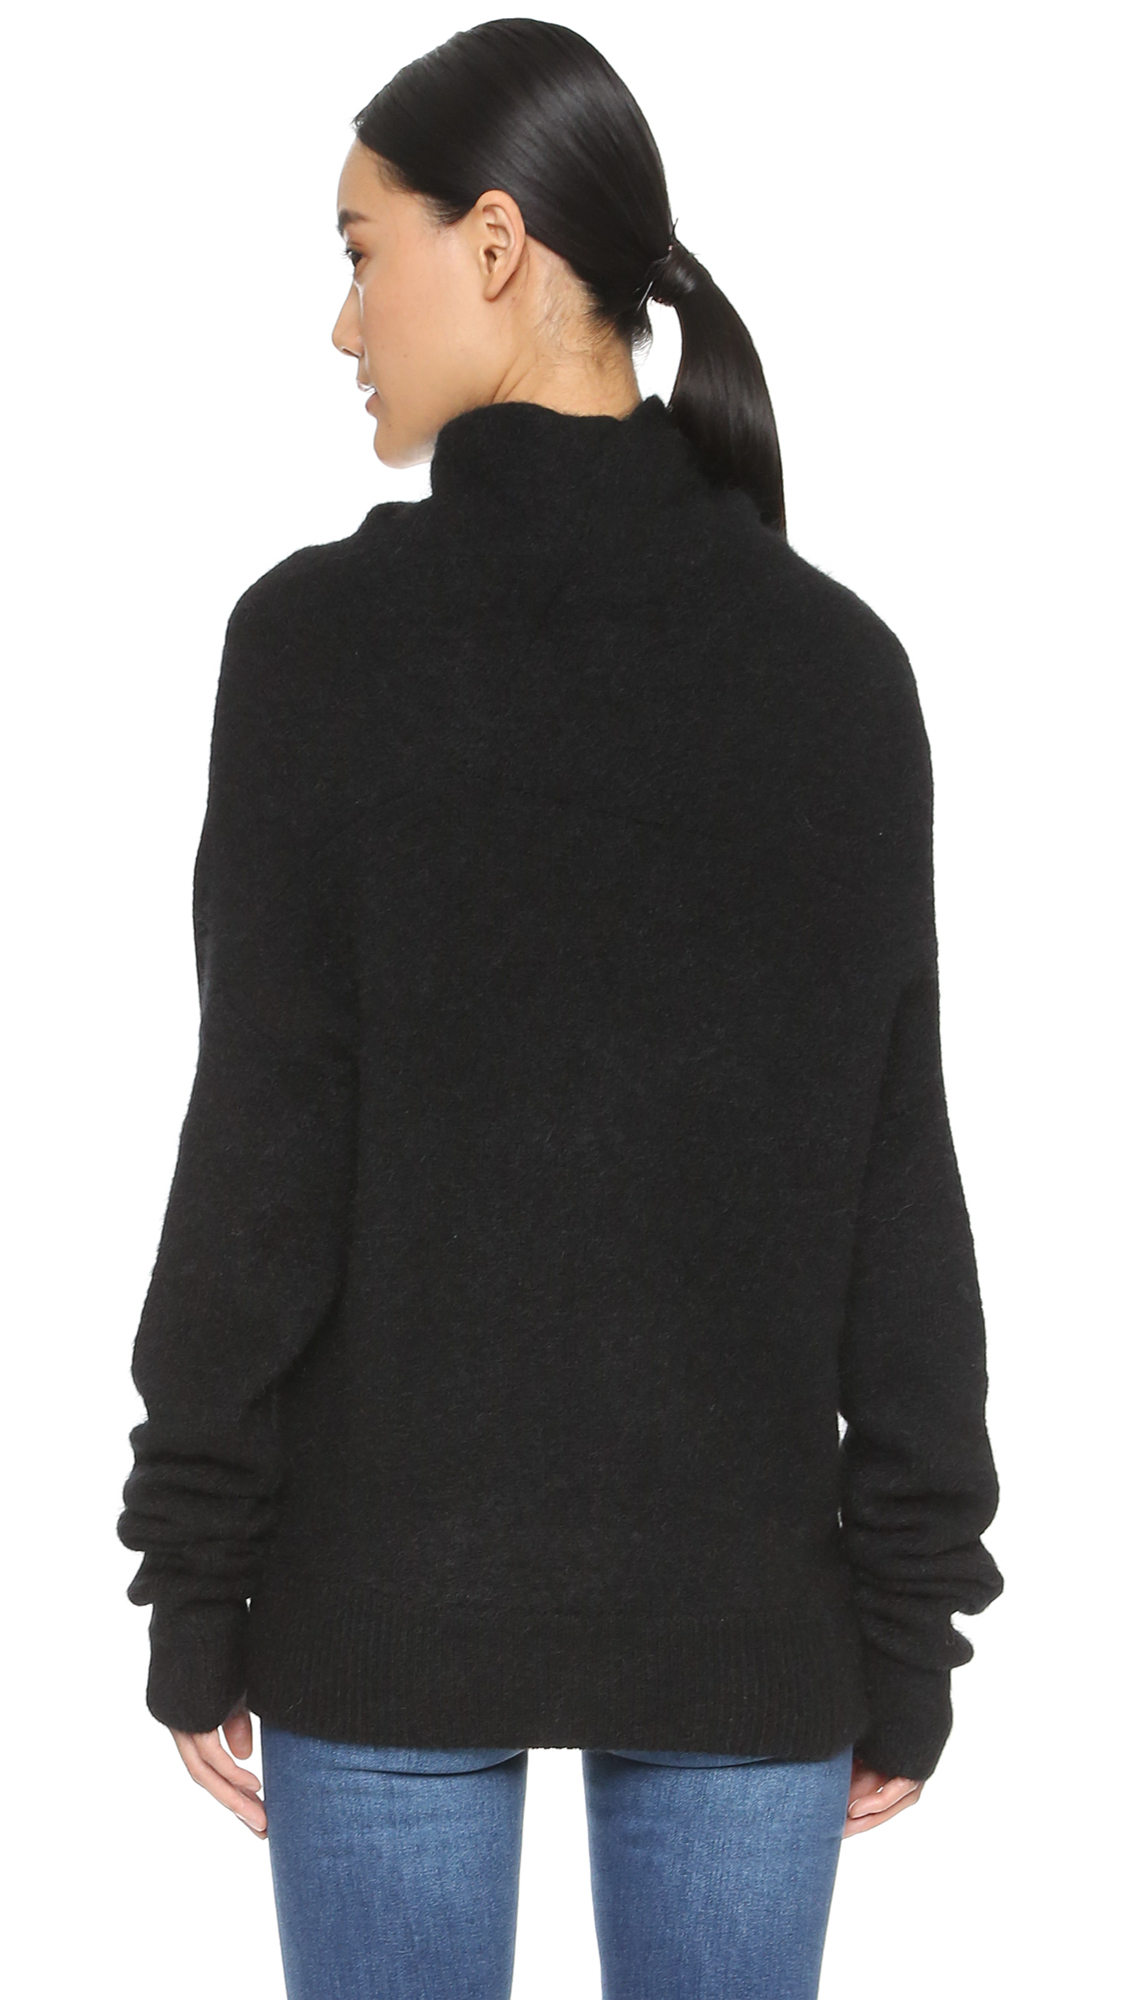 Acne Studios Vendome Mohair Sweater   SHOPBOP 7a1b432edae